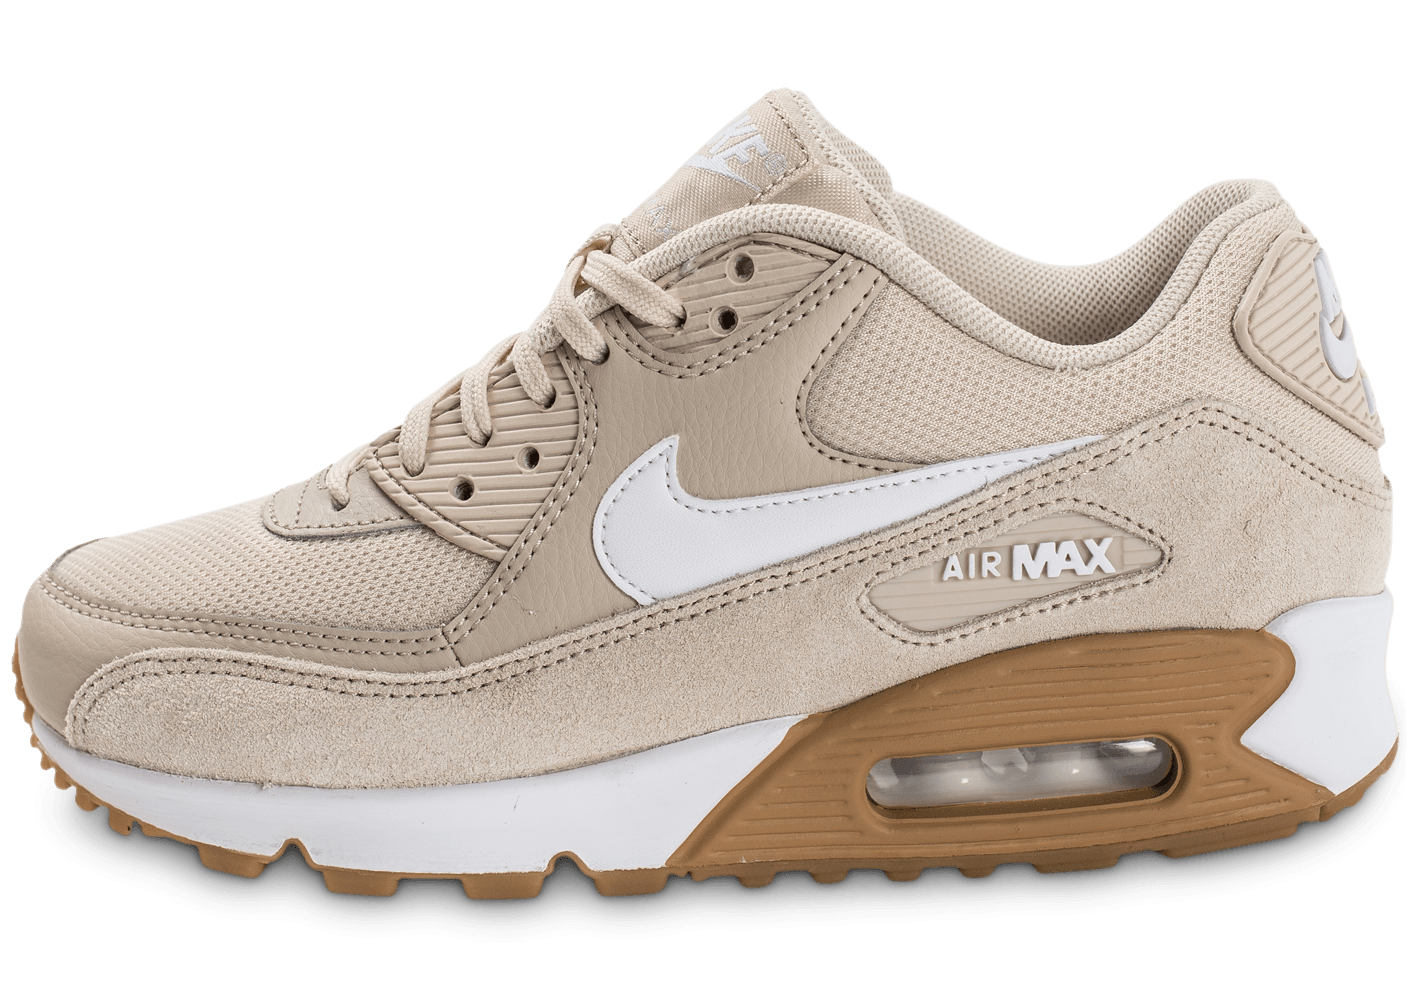 acheter populaire d4141 5f5a6 Nike Air Max 90 W beige